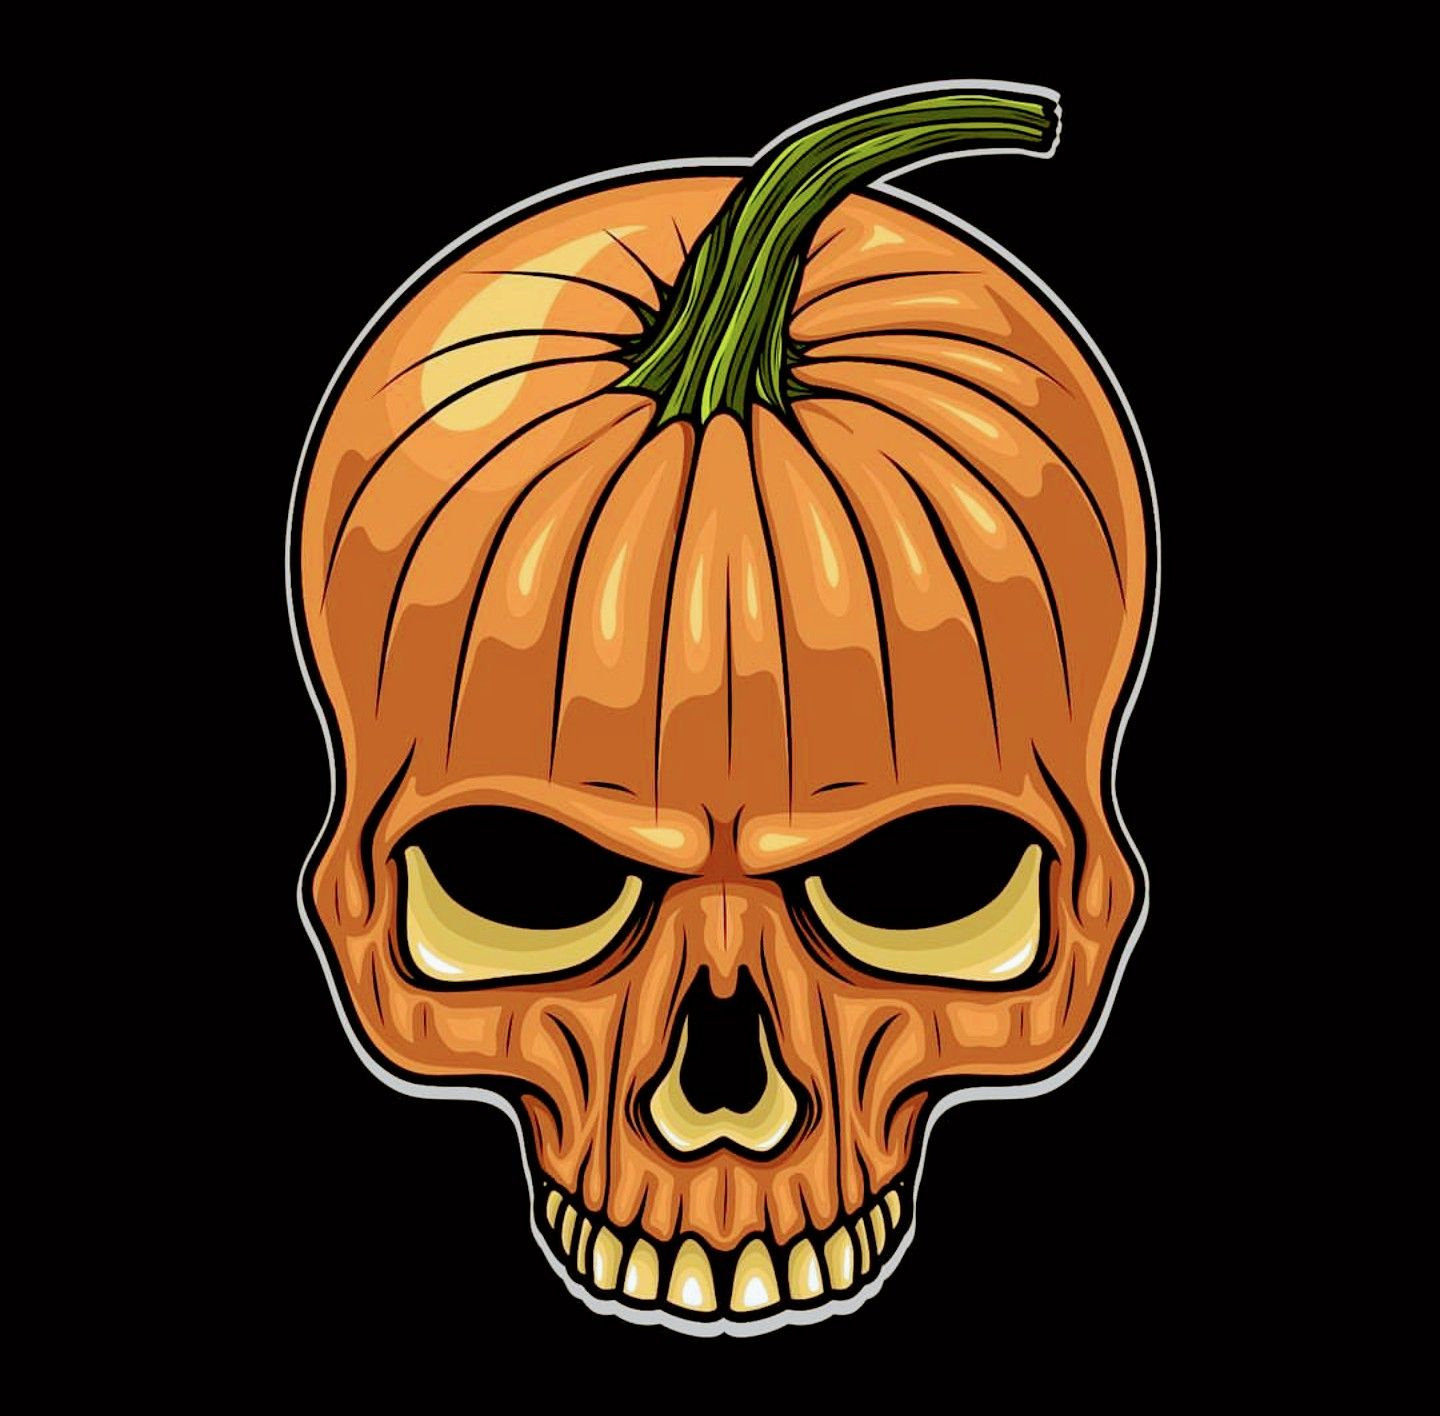 Pumpkin Skull, Halloween Halloween illustration, Pumpkin